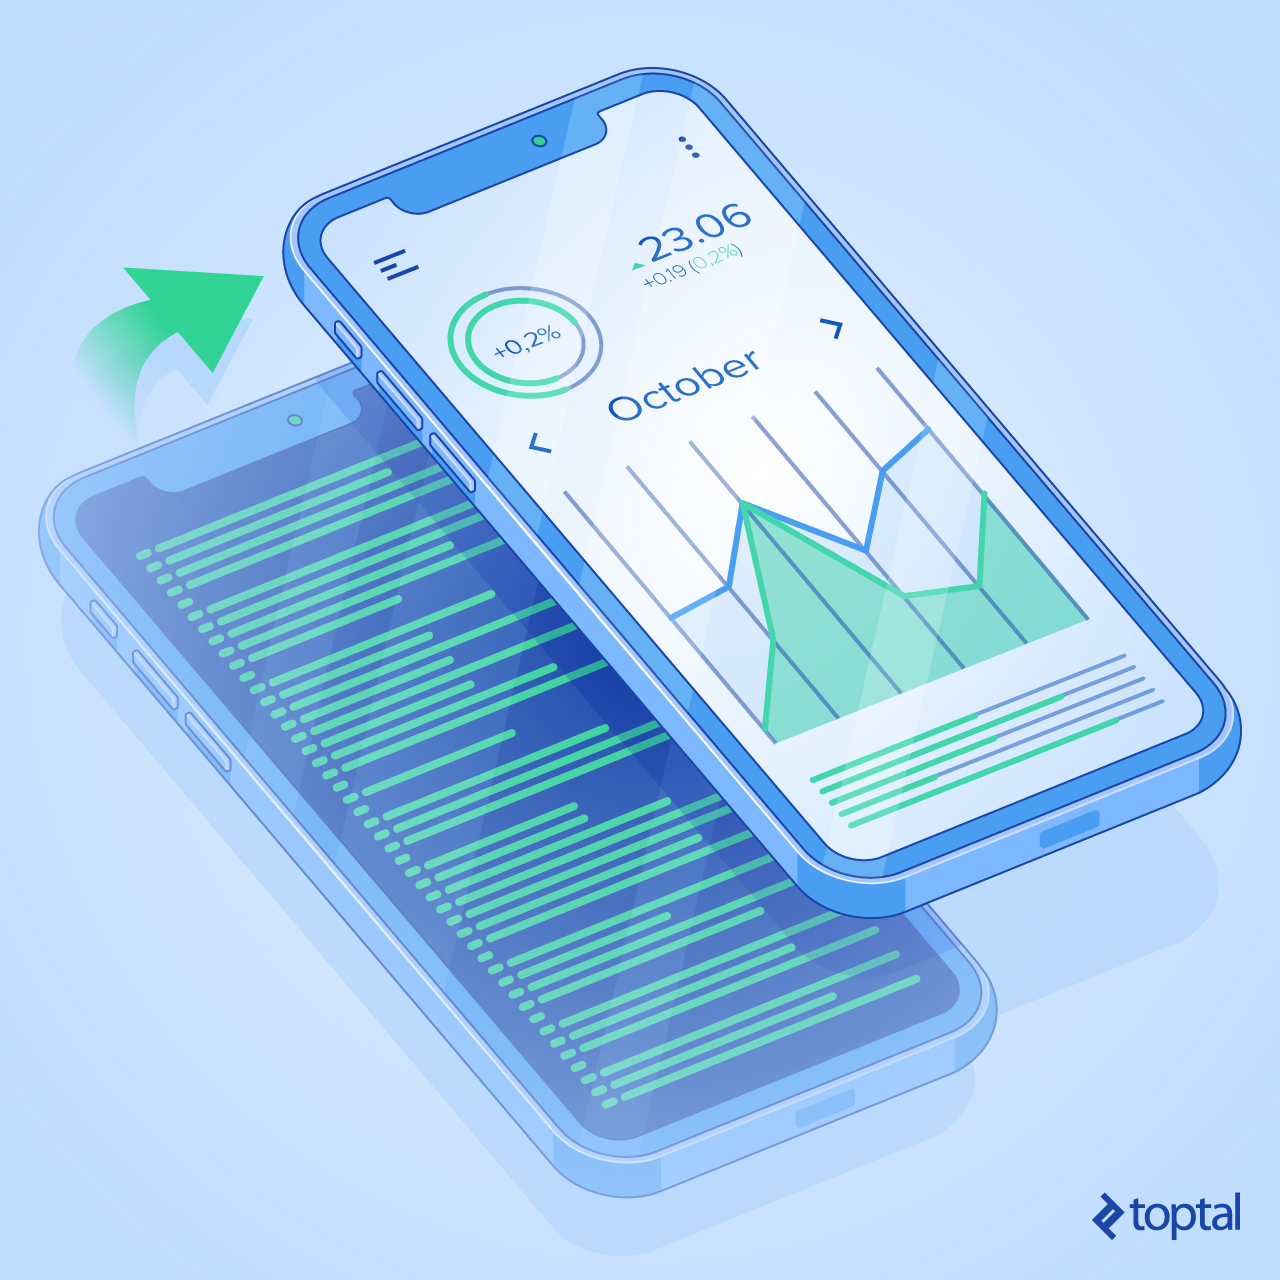 Pixel-perfect iOS UI Design Implementation | Toptal